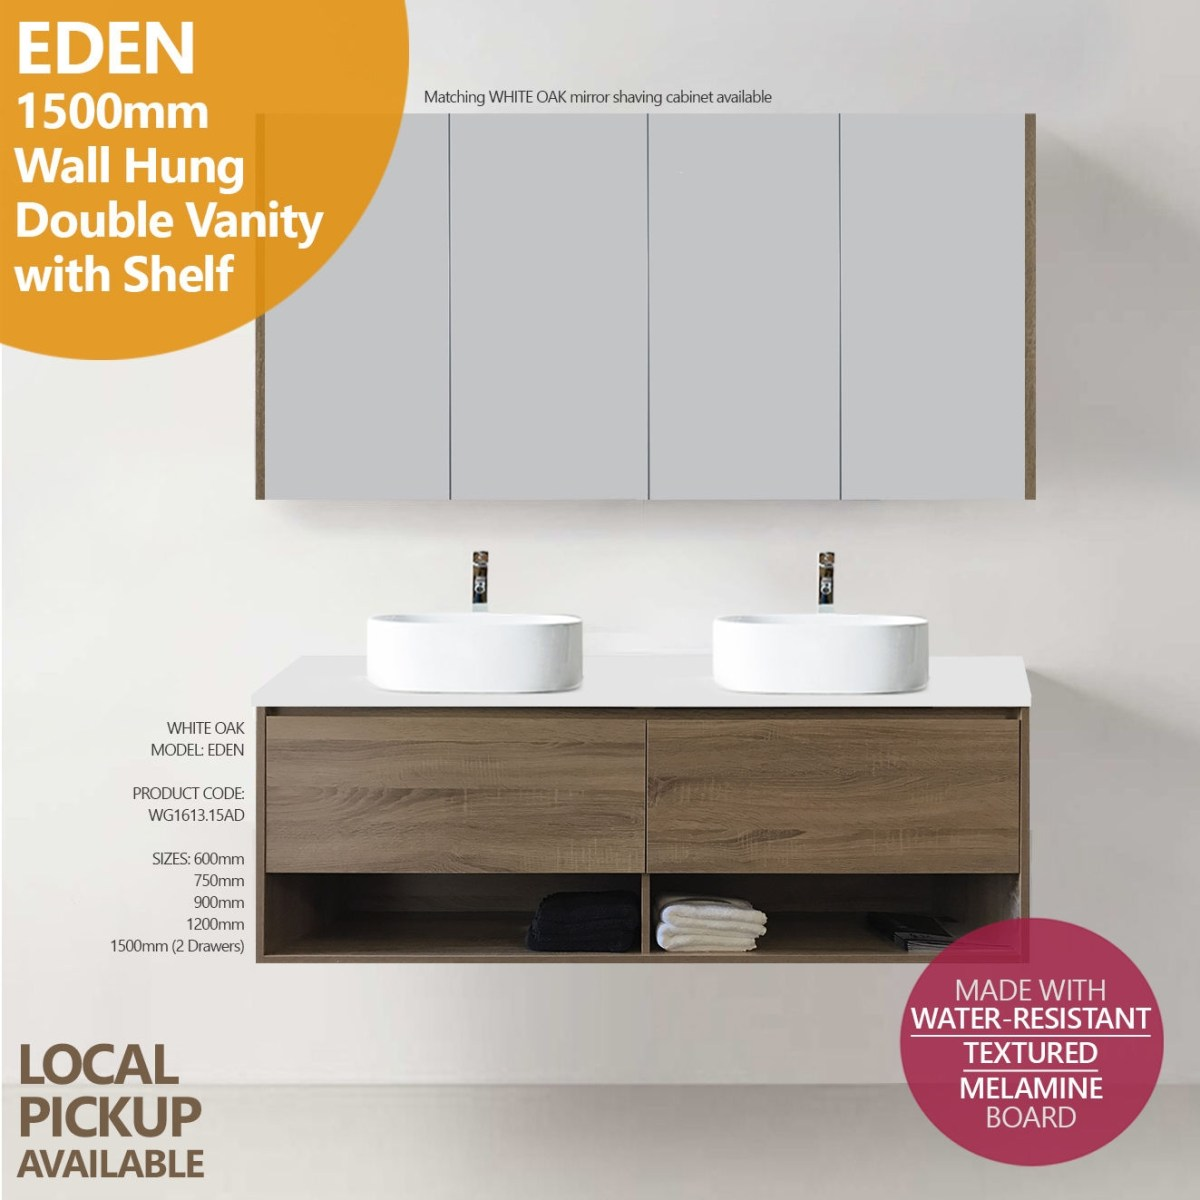 Eden 1500mm White Oak Timber Wood Grain Wall Hung Double